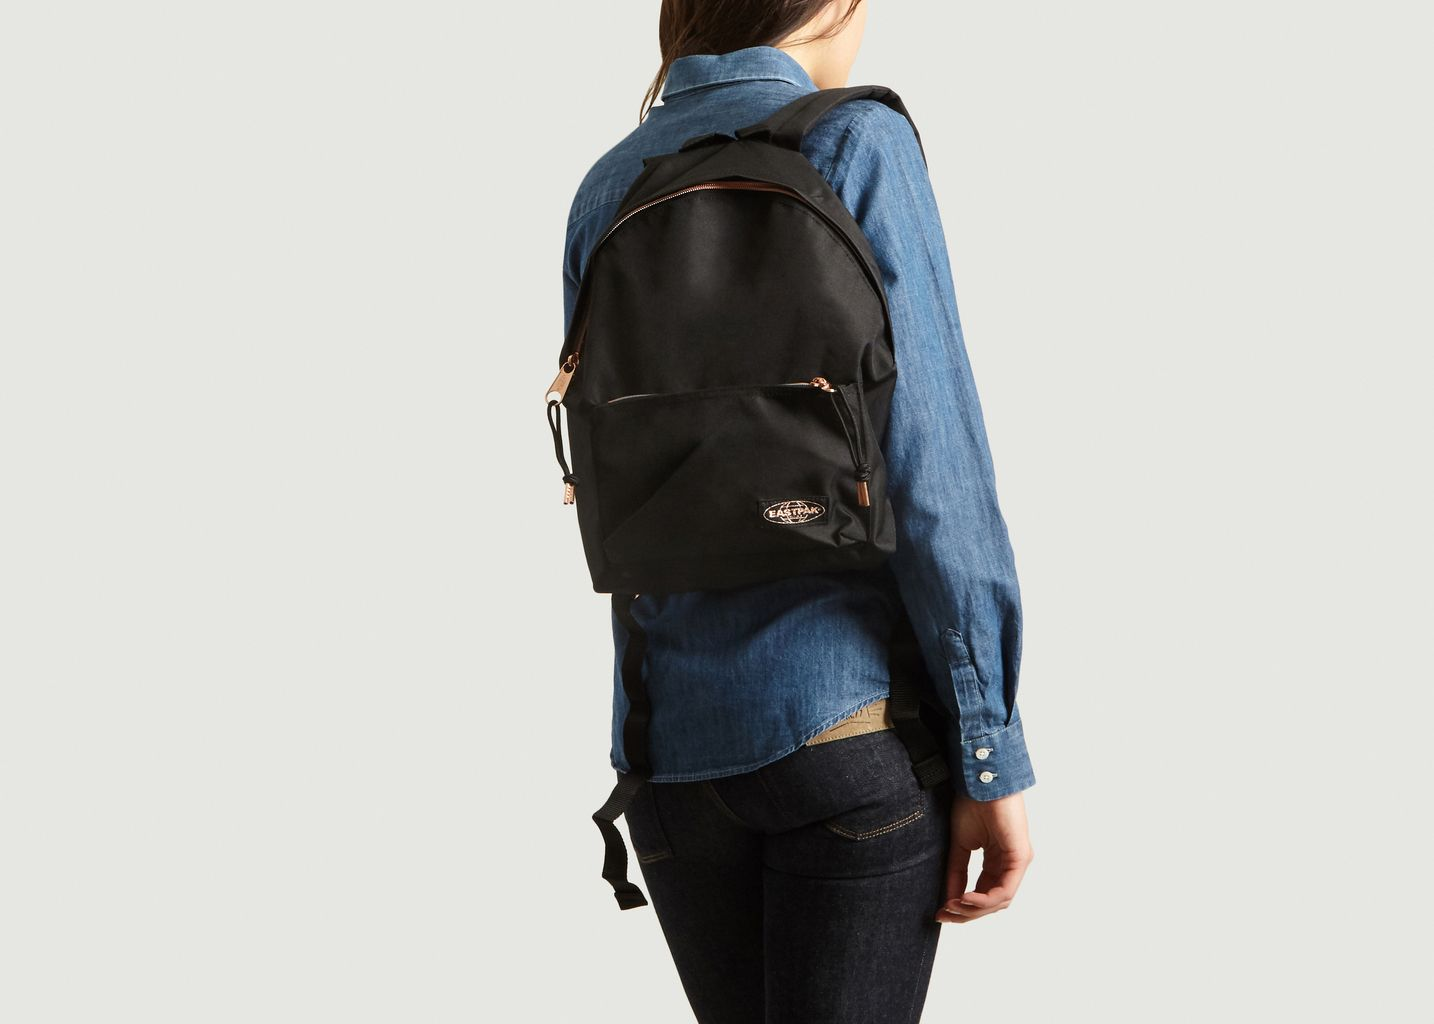 Mini Dos Orbit L'exception Noir Sac À Eastpak rOA8ZrHn